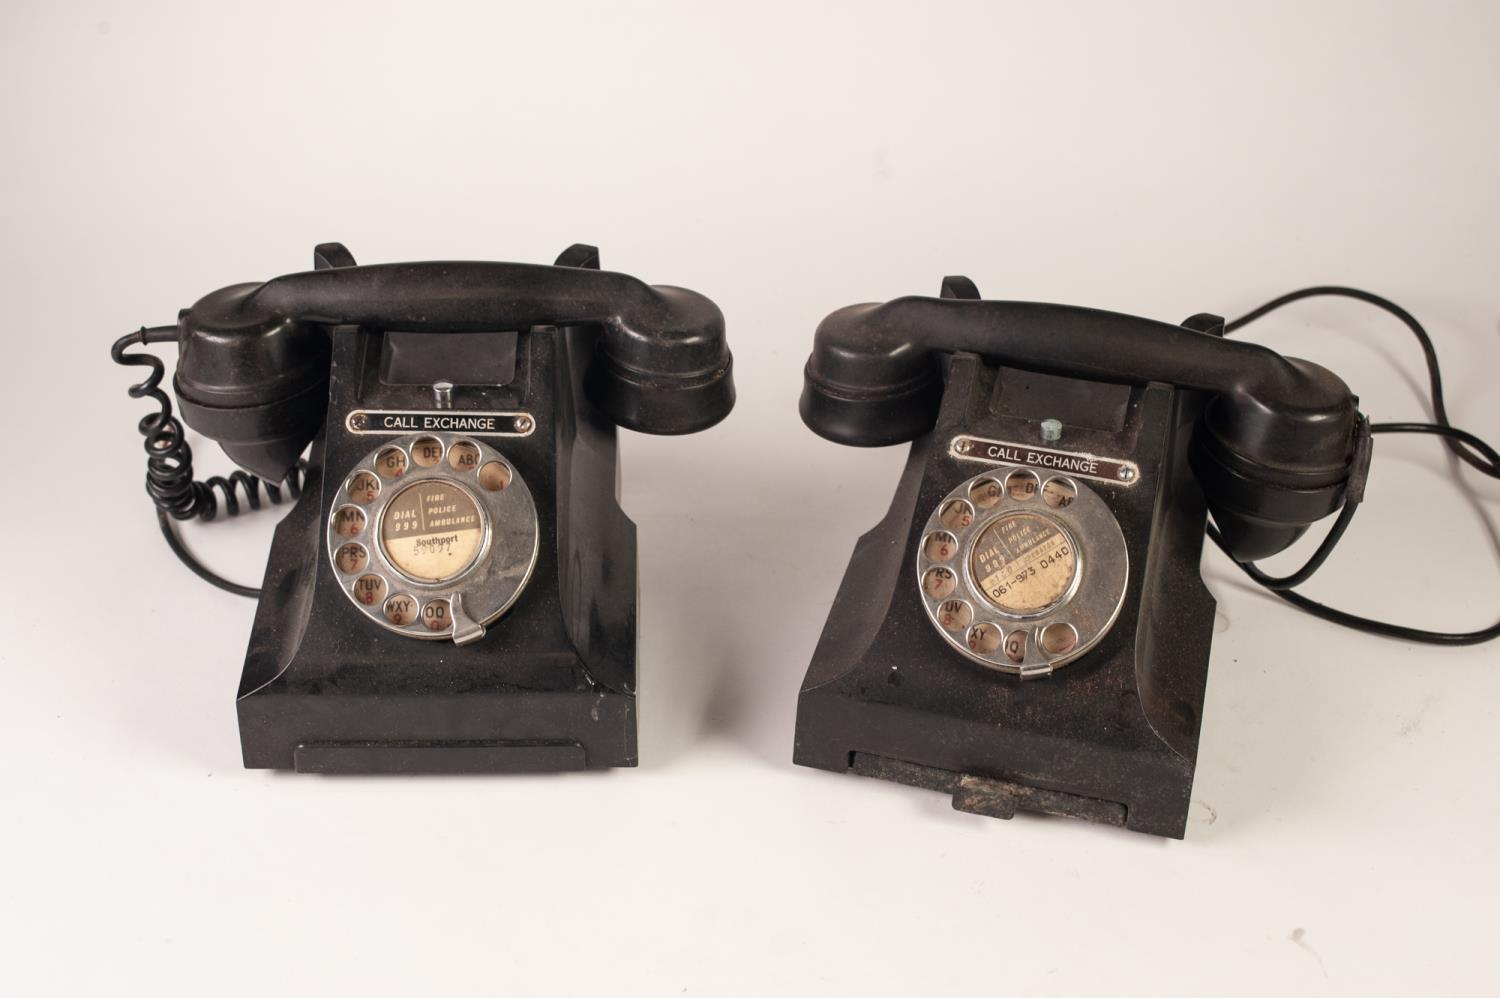 Lot 423 - TWO G.P.O. BLACK BAKELITE CRADLE TELEPHONRES, top mounted with chromed metal call exchange buttons